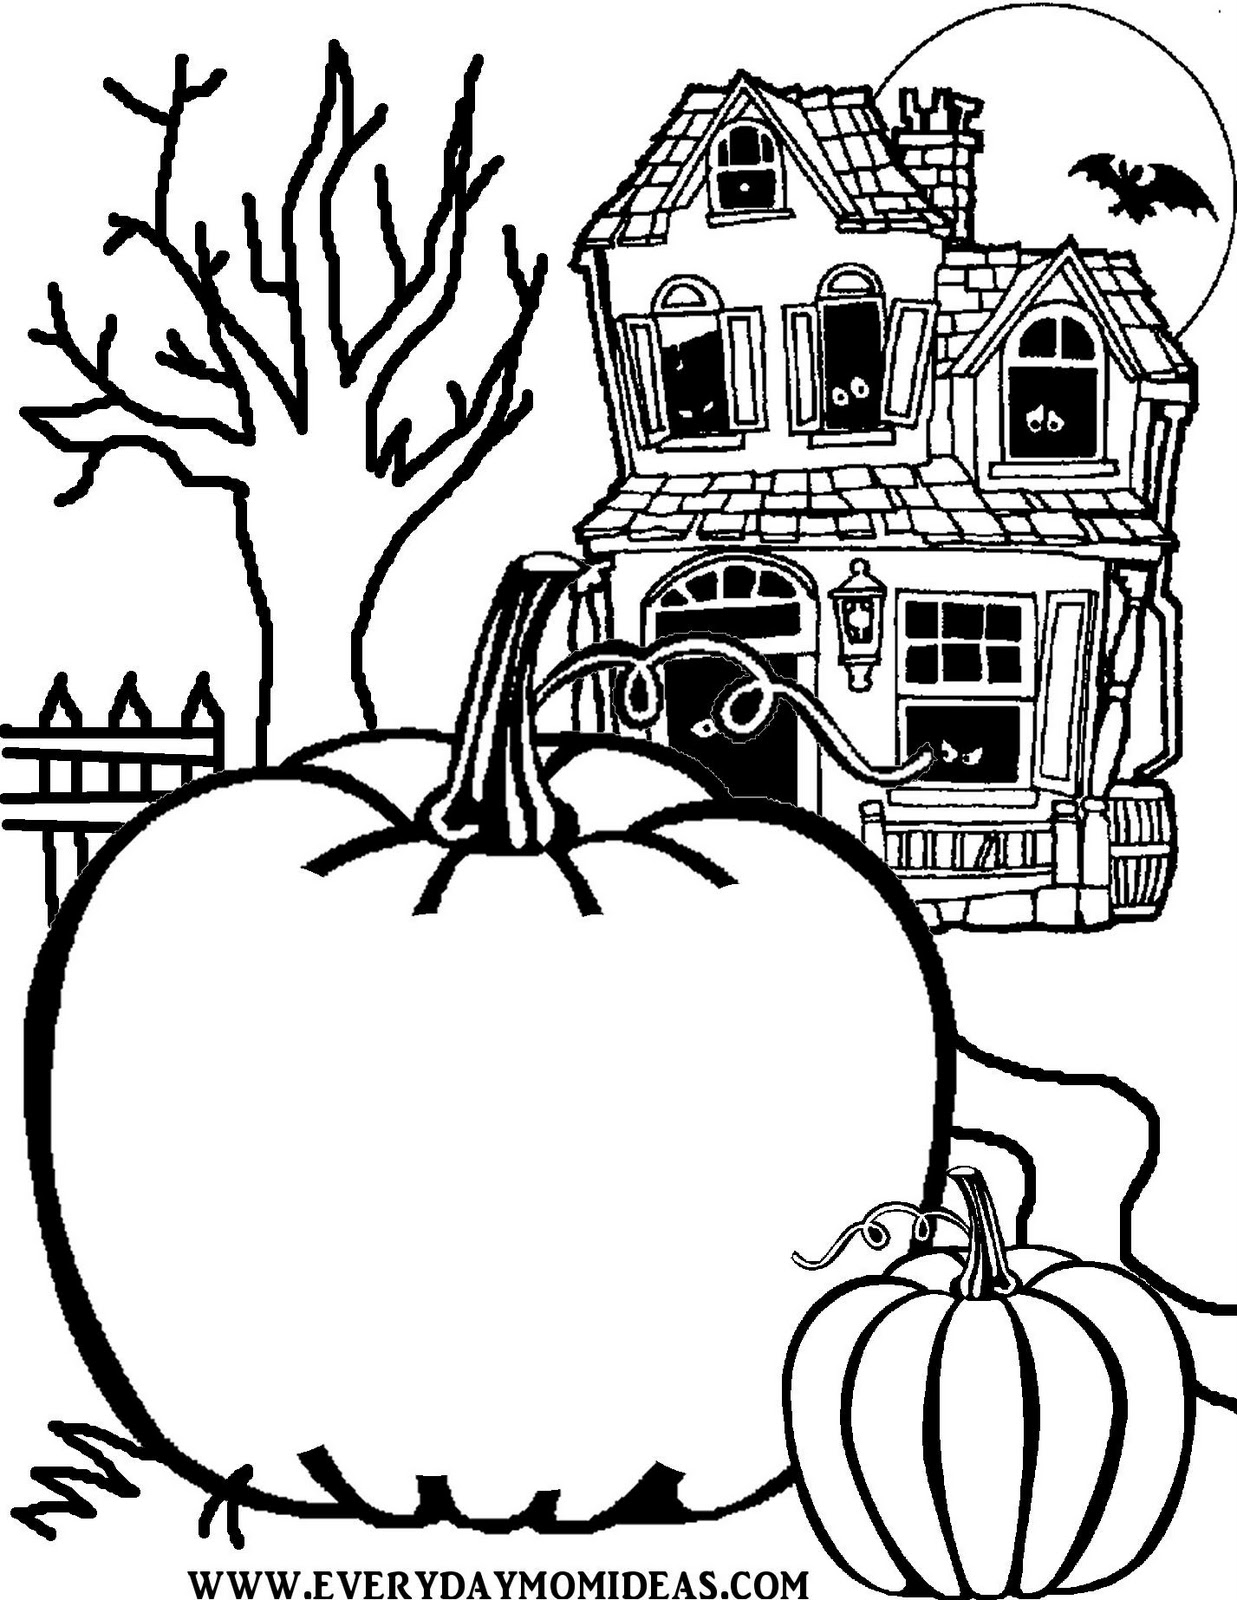 Create Your Own Jack-O-Lantern (Halloween Coloring Printable ...